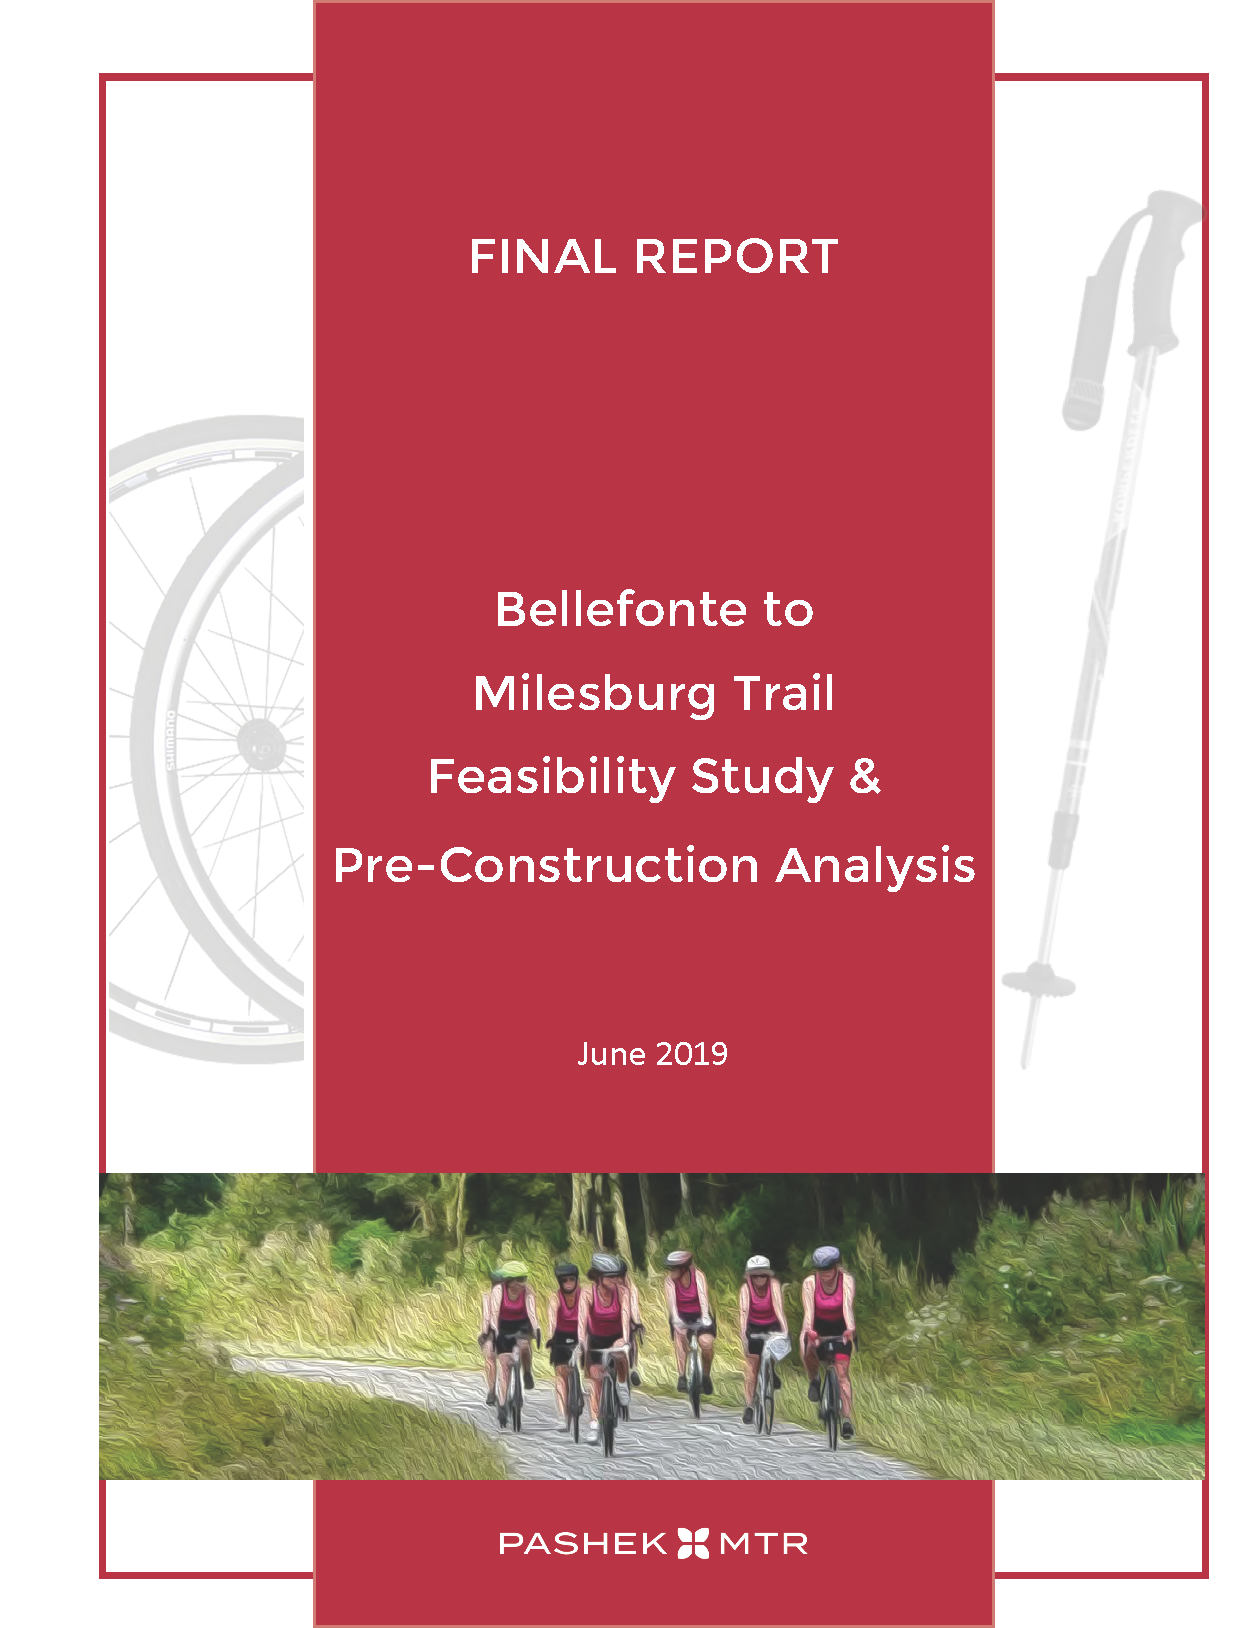 Bellefonte-Milesburg Trail Feasibility Study - Final Document Cover